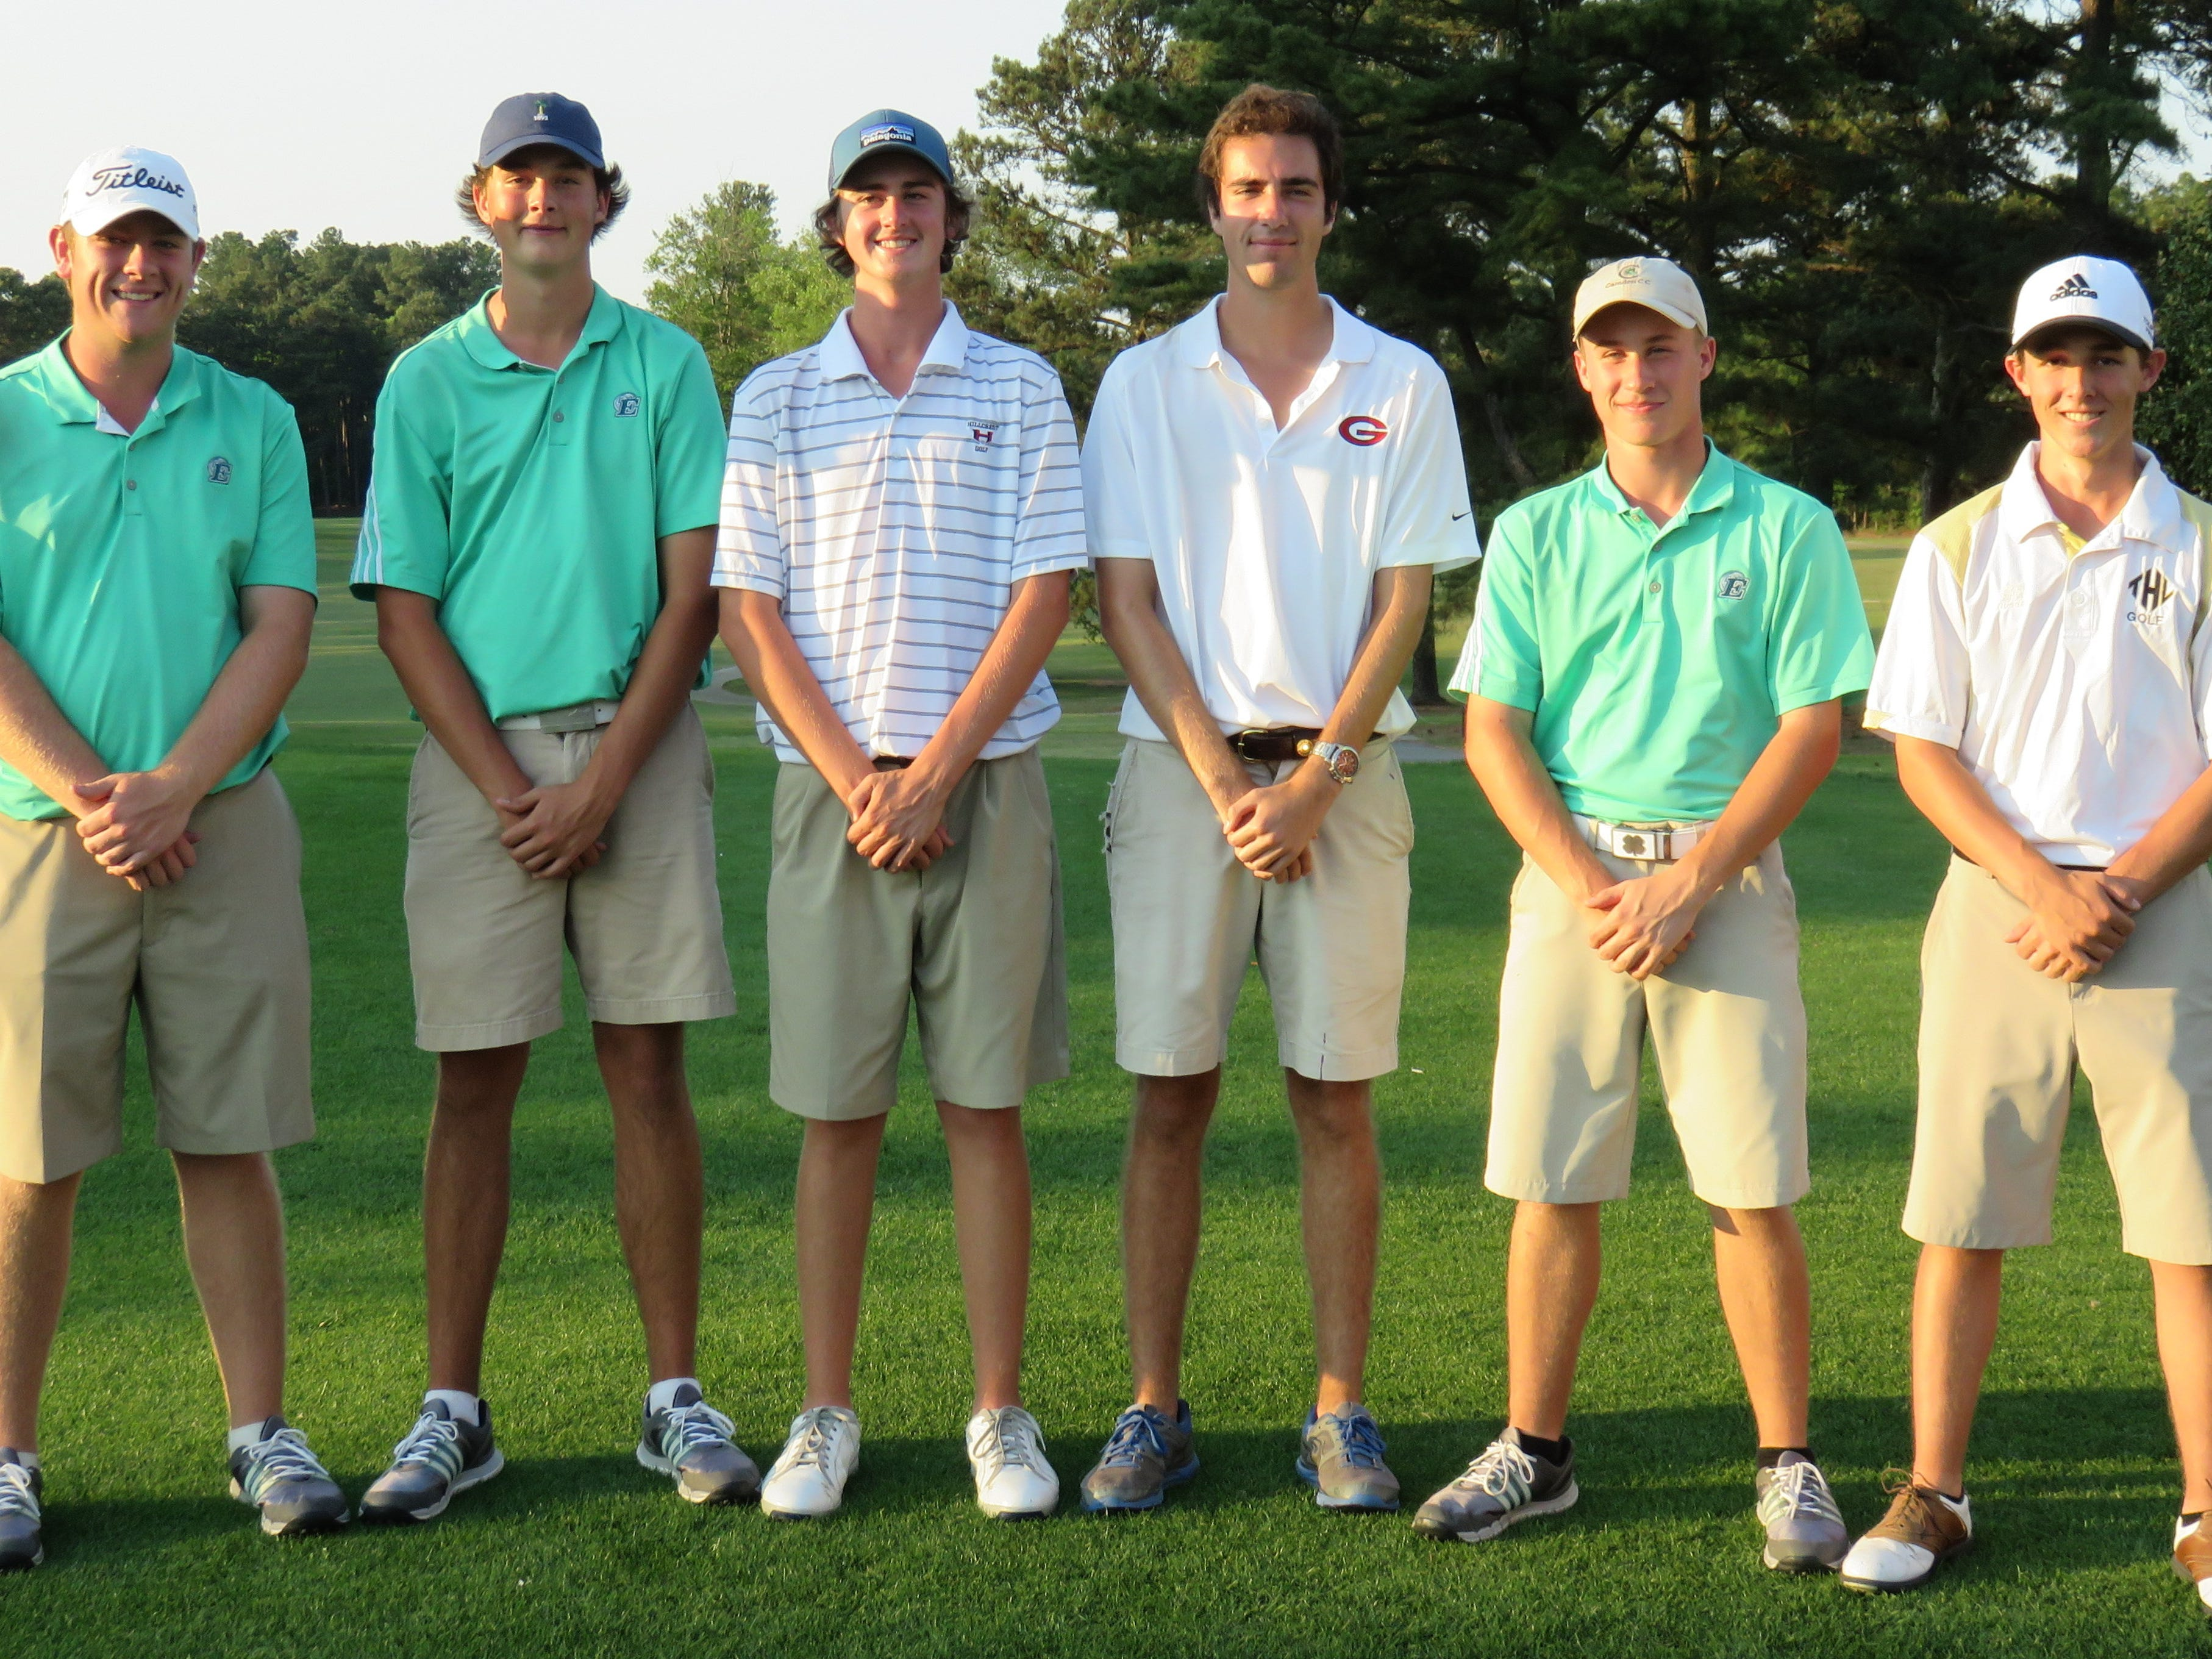 The All-Region 1-AAAA golf team consisted of, left to right, Matt Carter (Easley), Drake McAlister (Easley), Colby Patton (Hillcrest), Logan Kennedy (Greenville), Hunter Camp (Easley) and Jake Miller (T.L. Hanna).